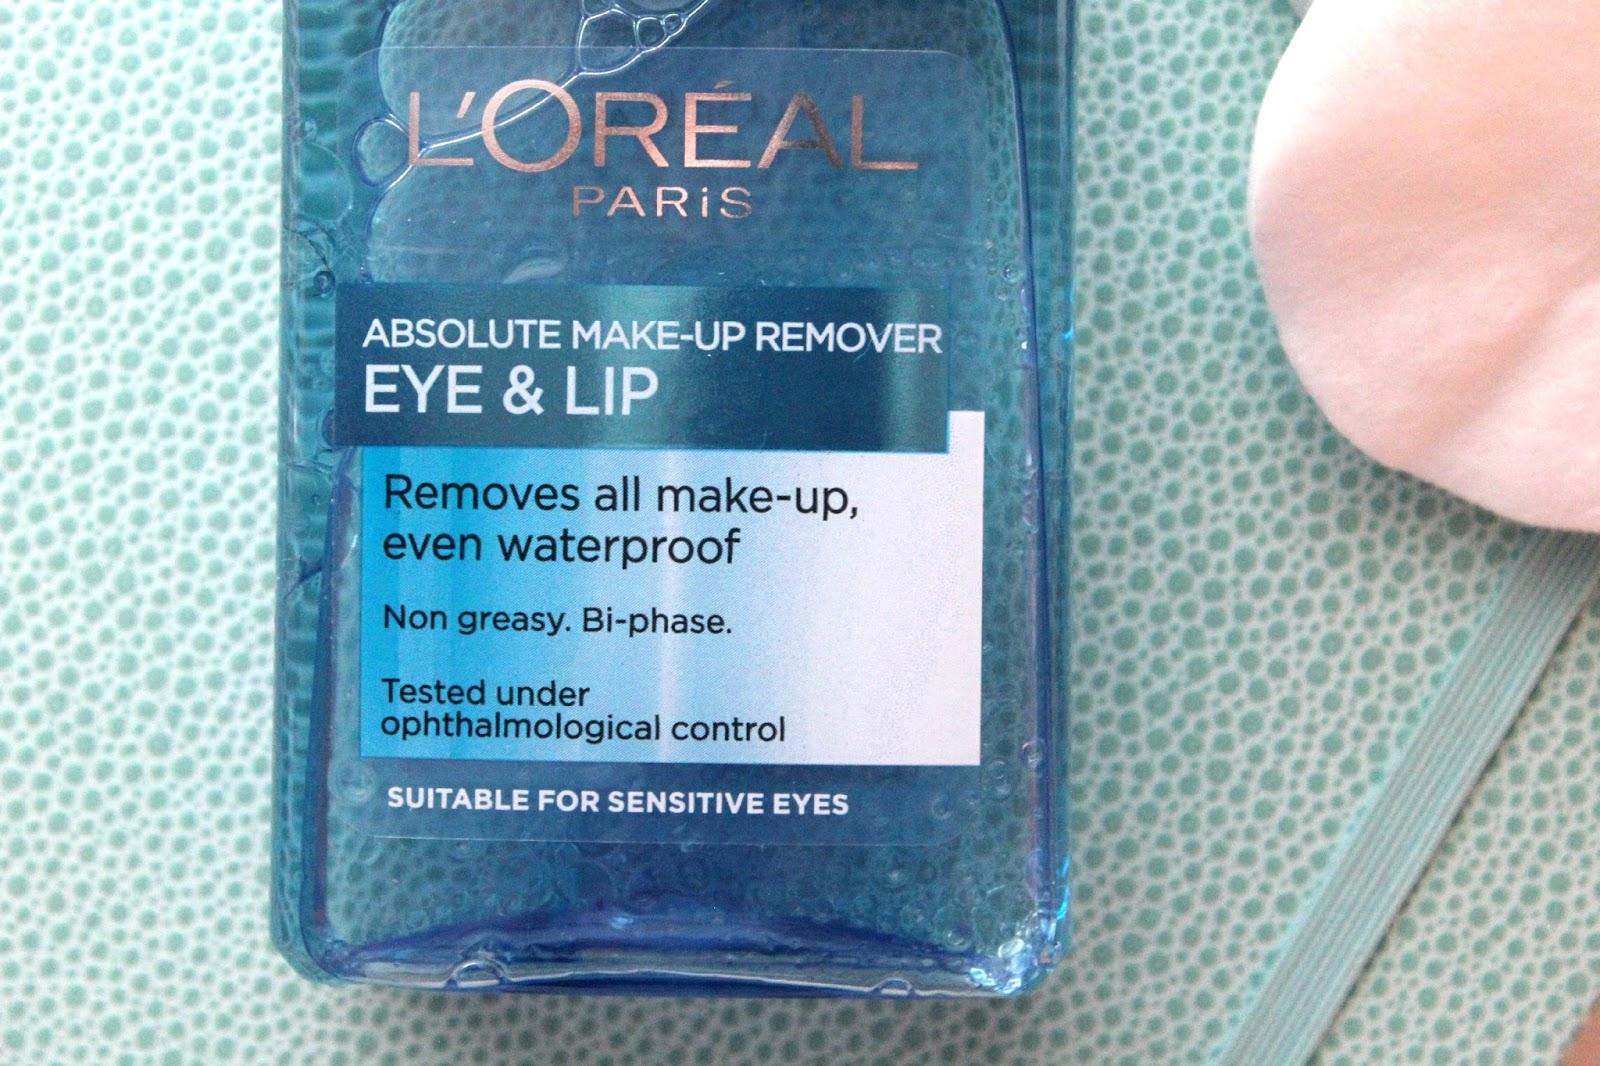 You may well have seen on my blog a little while back a review on a similar looking product. I reviewed the L'oreal Gentle Eye Make-up Remover and didn't ...